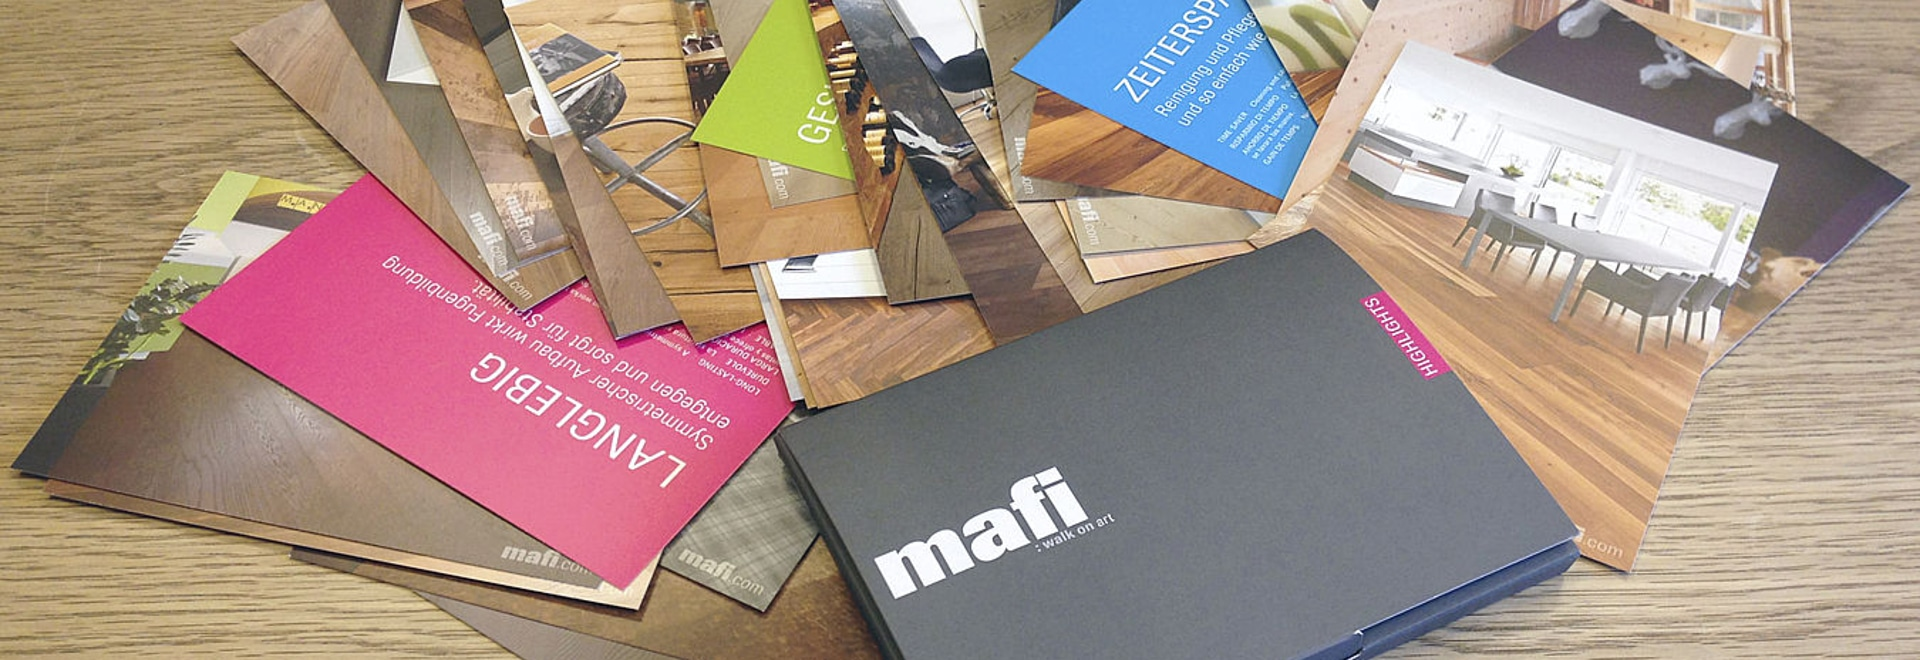 About Hunters and Collectors - new mafi Card Box